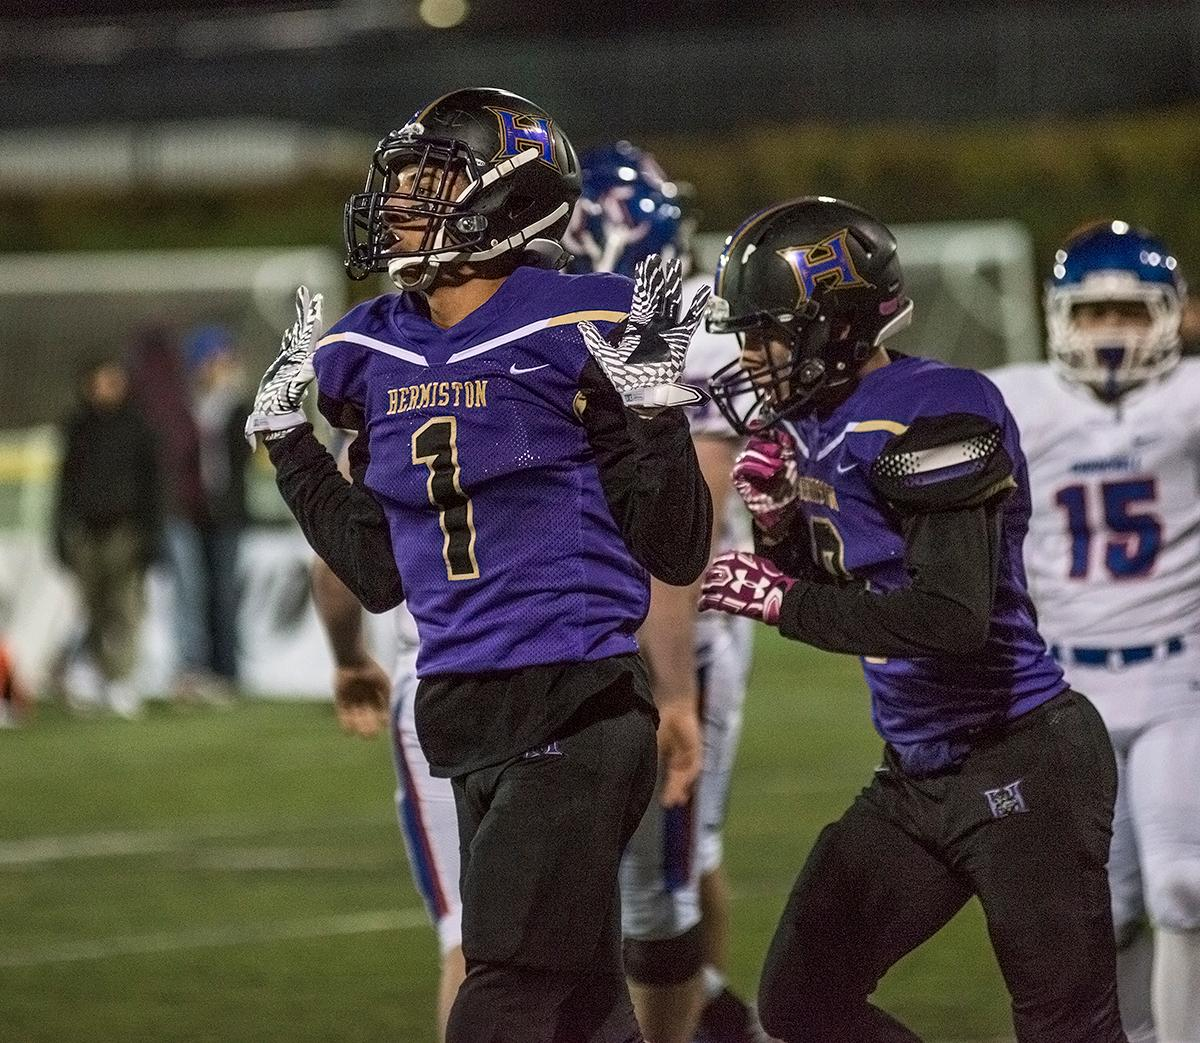 Hermiston Bulldogs wide receiver Dayshawn Neal (#1) celebrates a touchdown.The Hermiston Bulldogs defeated the Churchill Lancers 38-35 for the 5A state title Saturday evening at Hillsboro Stadium. Photo by Abigail Winn, Oregon News Lab